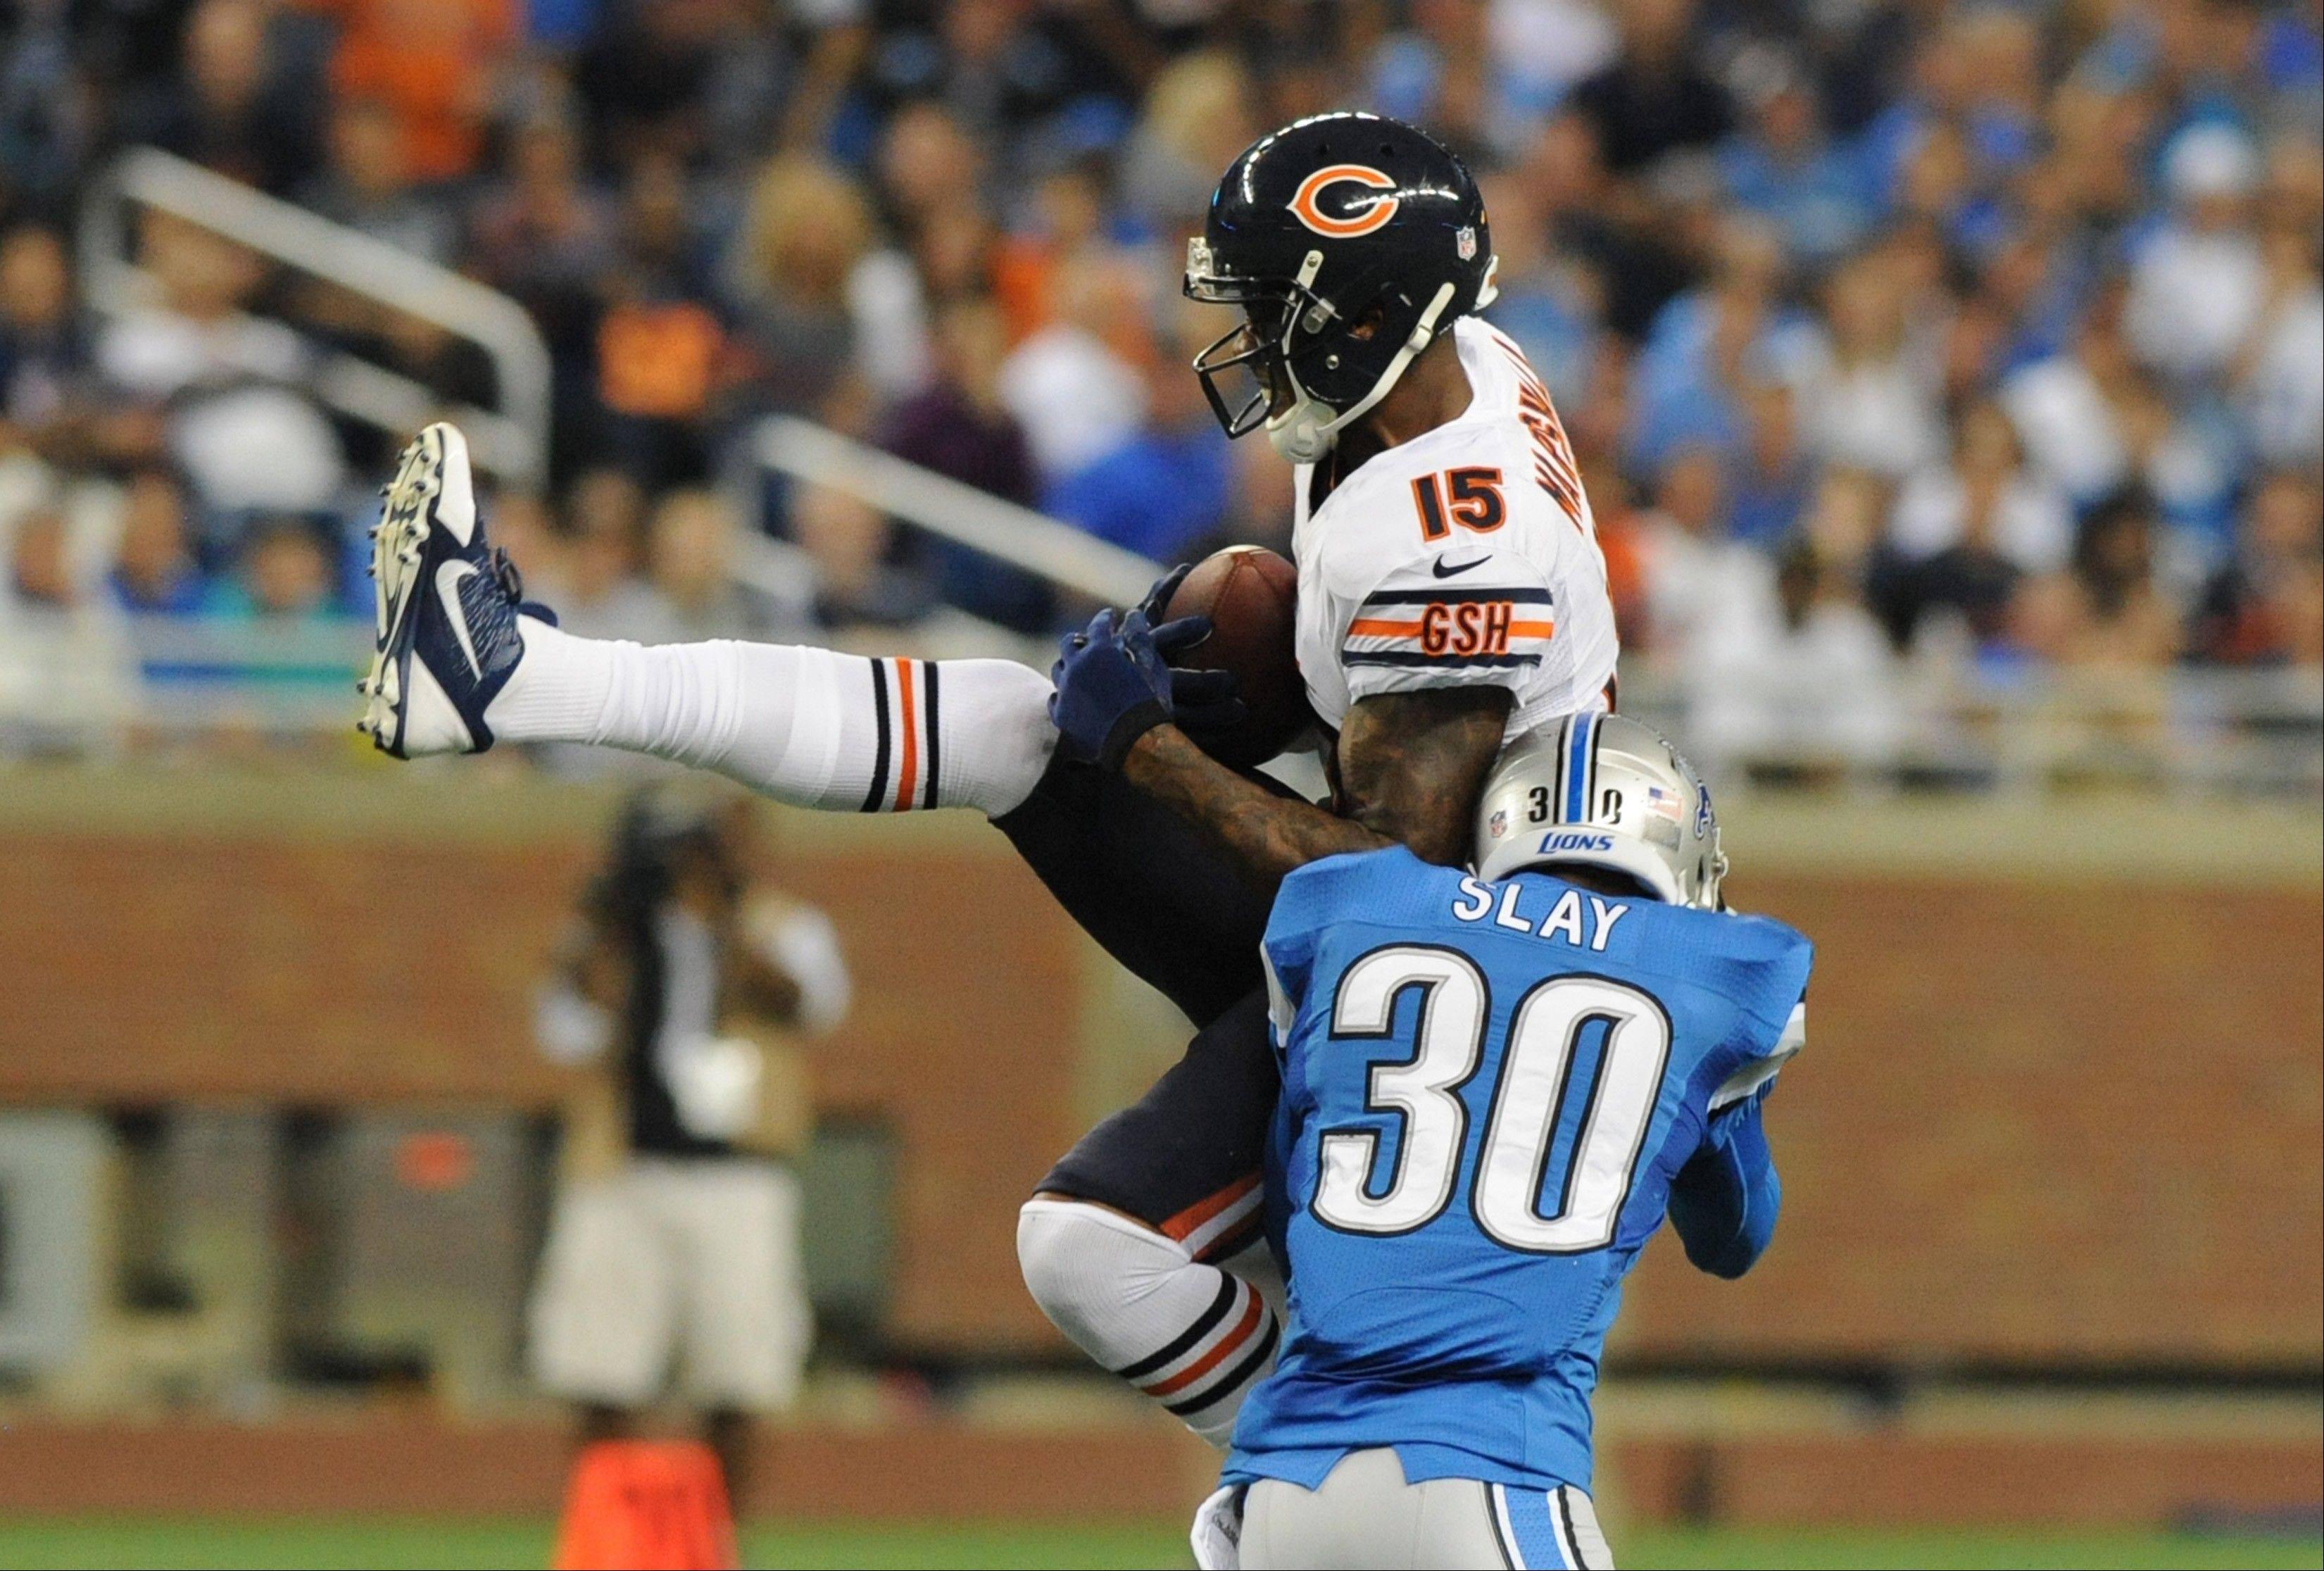 Chicago Bears wide receiver Brandon Marshall (15) is stopped by Detroit Lions cornerback Darius Slay (30) after a 24-yard reception during the third quarter of an NFL football game Sunday at Ford Field in Detroit.